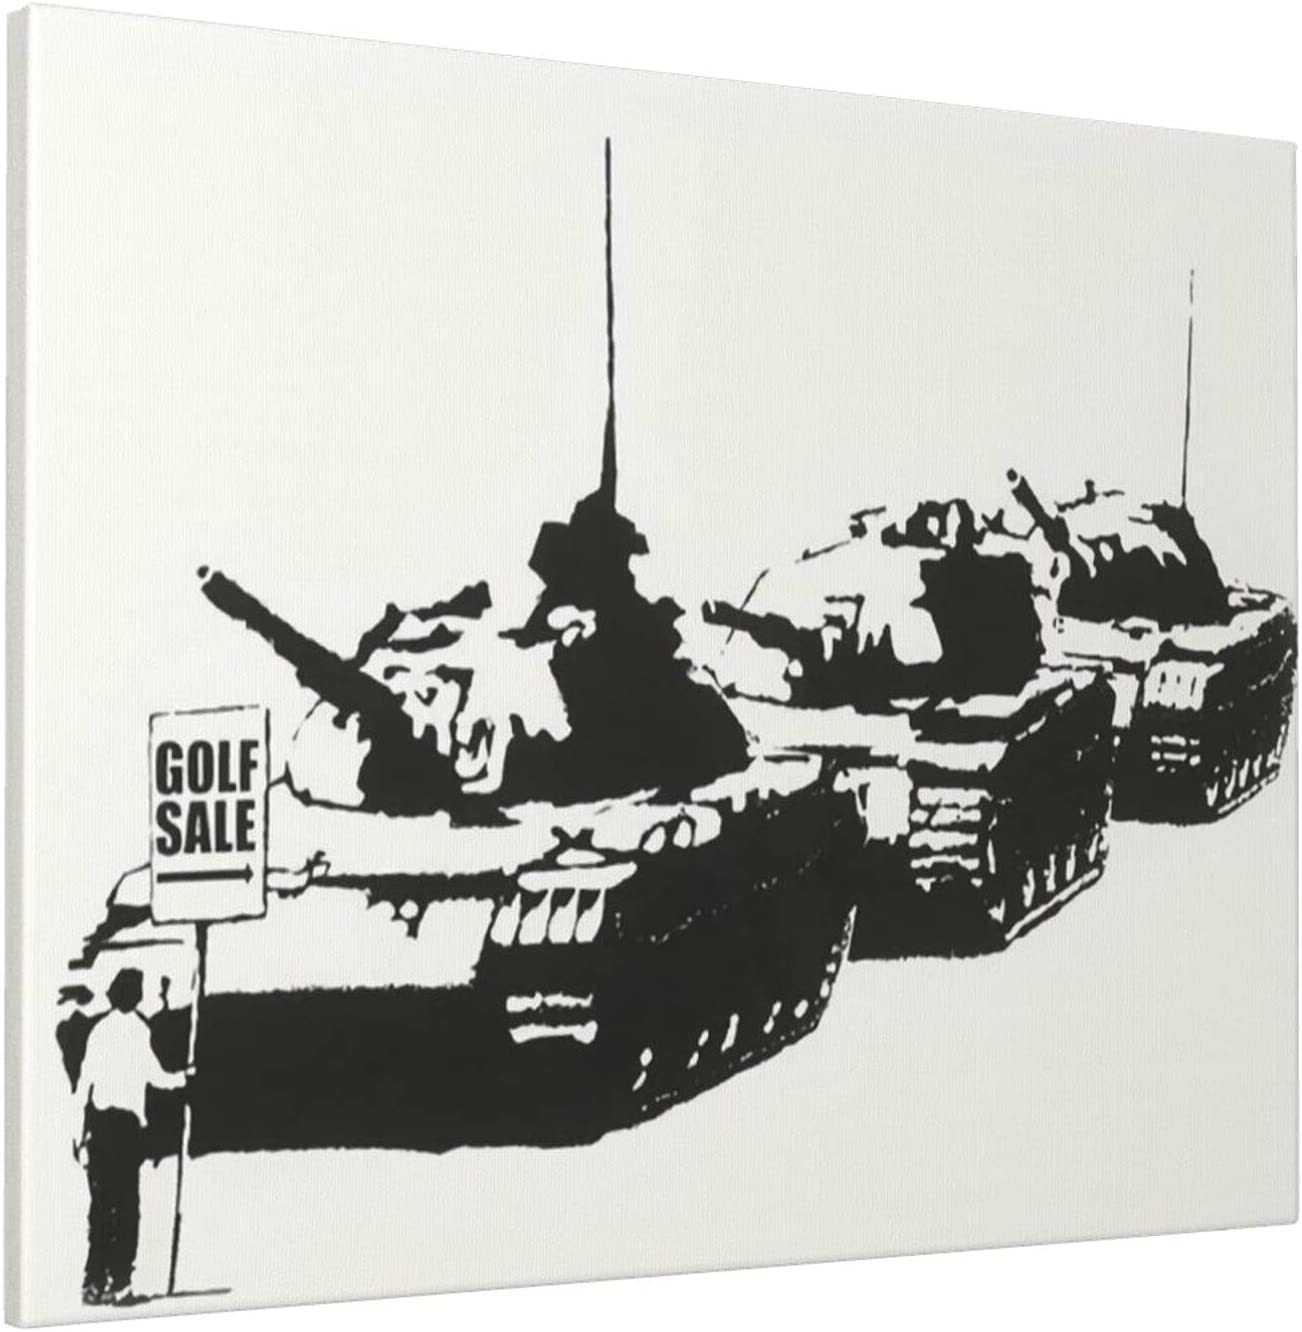 Banksy Golf Sale Signed Poster 20x16 Phoenix Mall Large Inch Painting Online limited product Framed